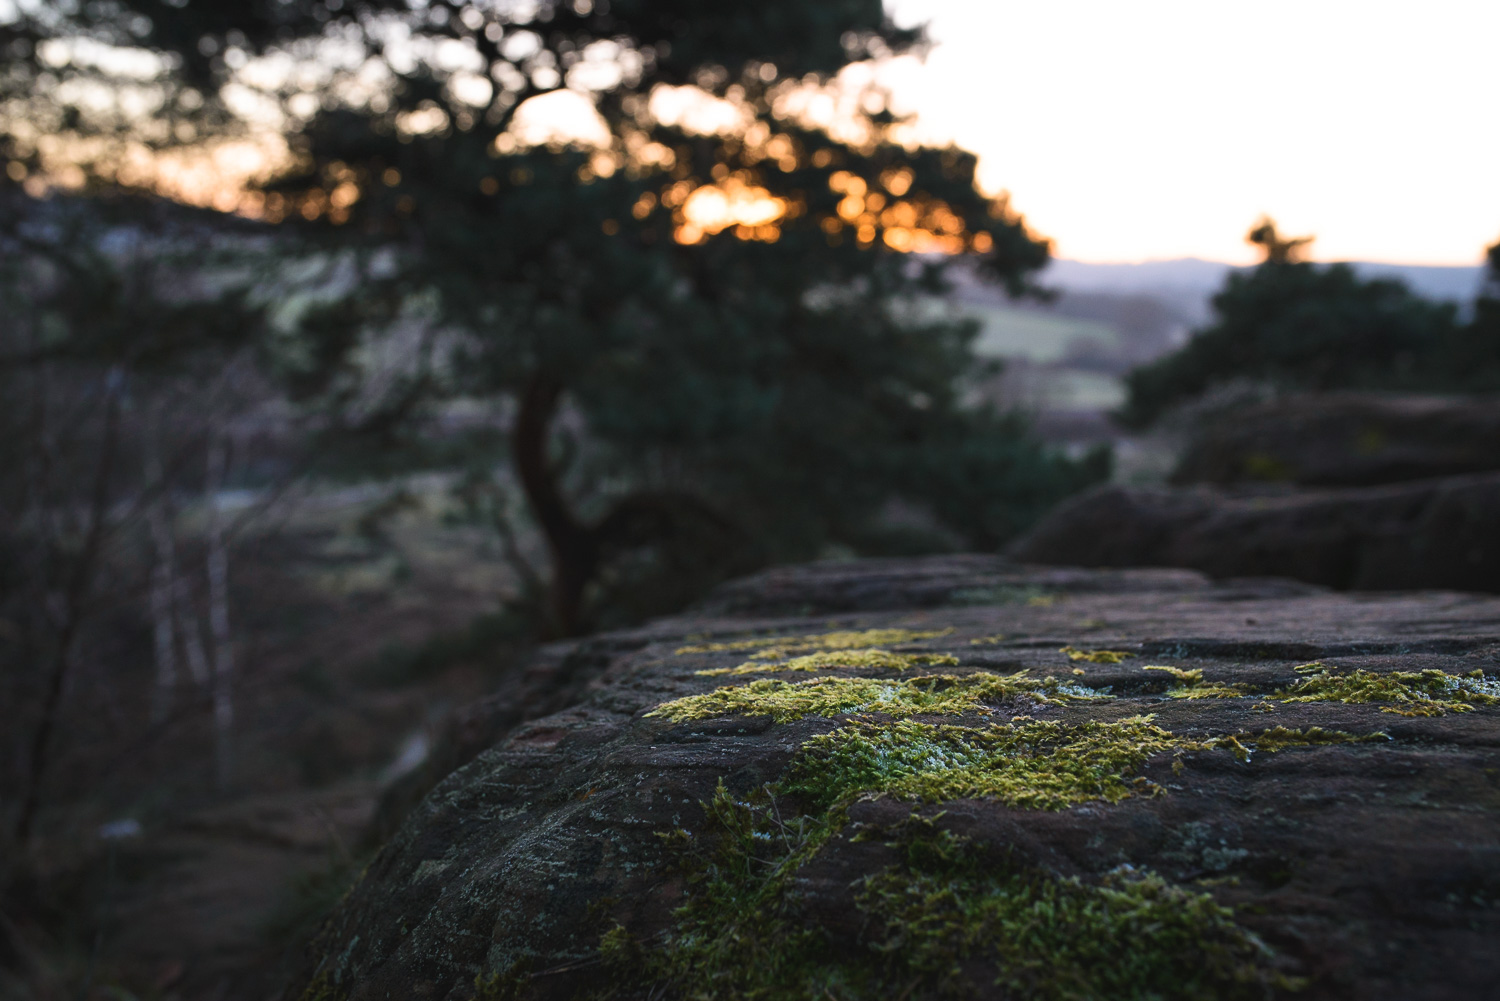 The view at sunset from the 'Devils Spittleful' in the Rifle Range nature reserve.